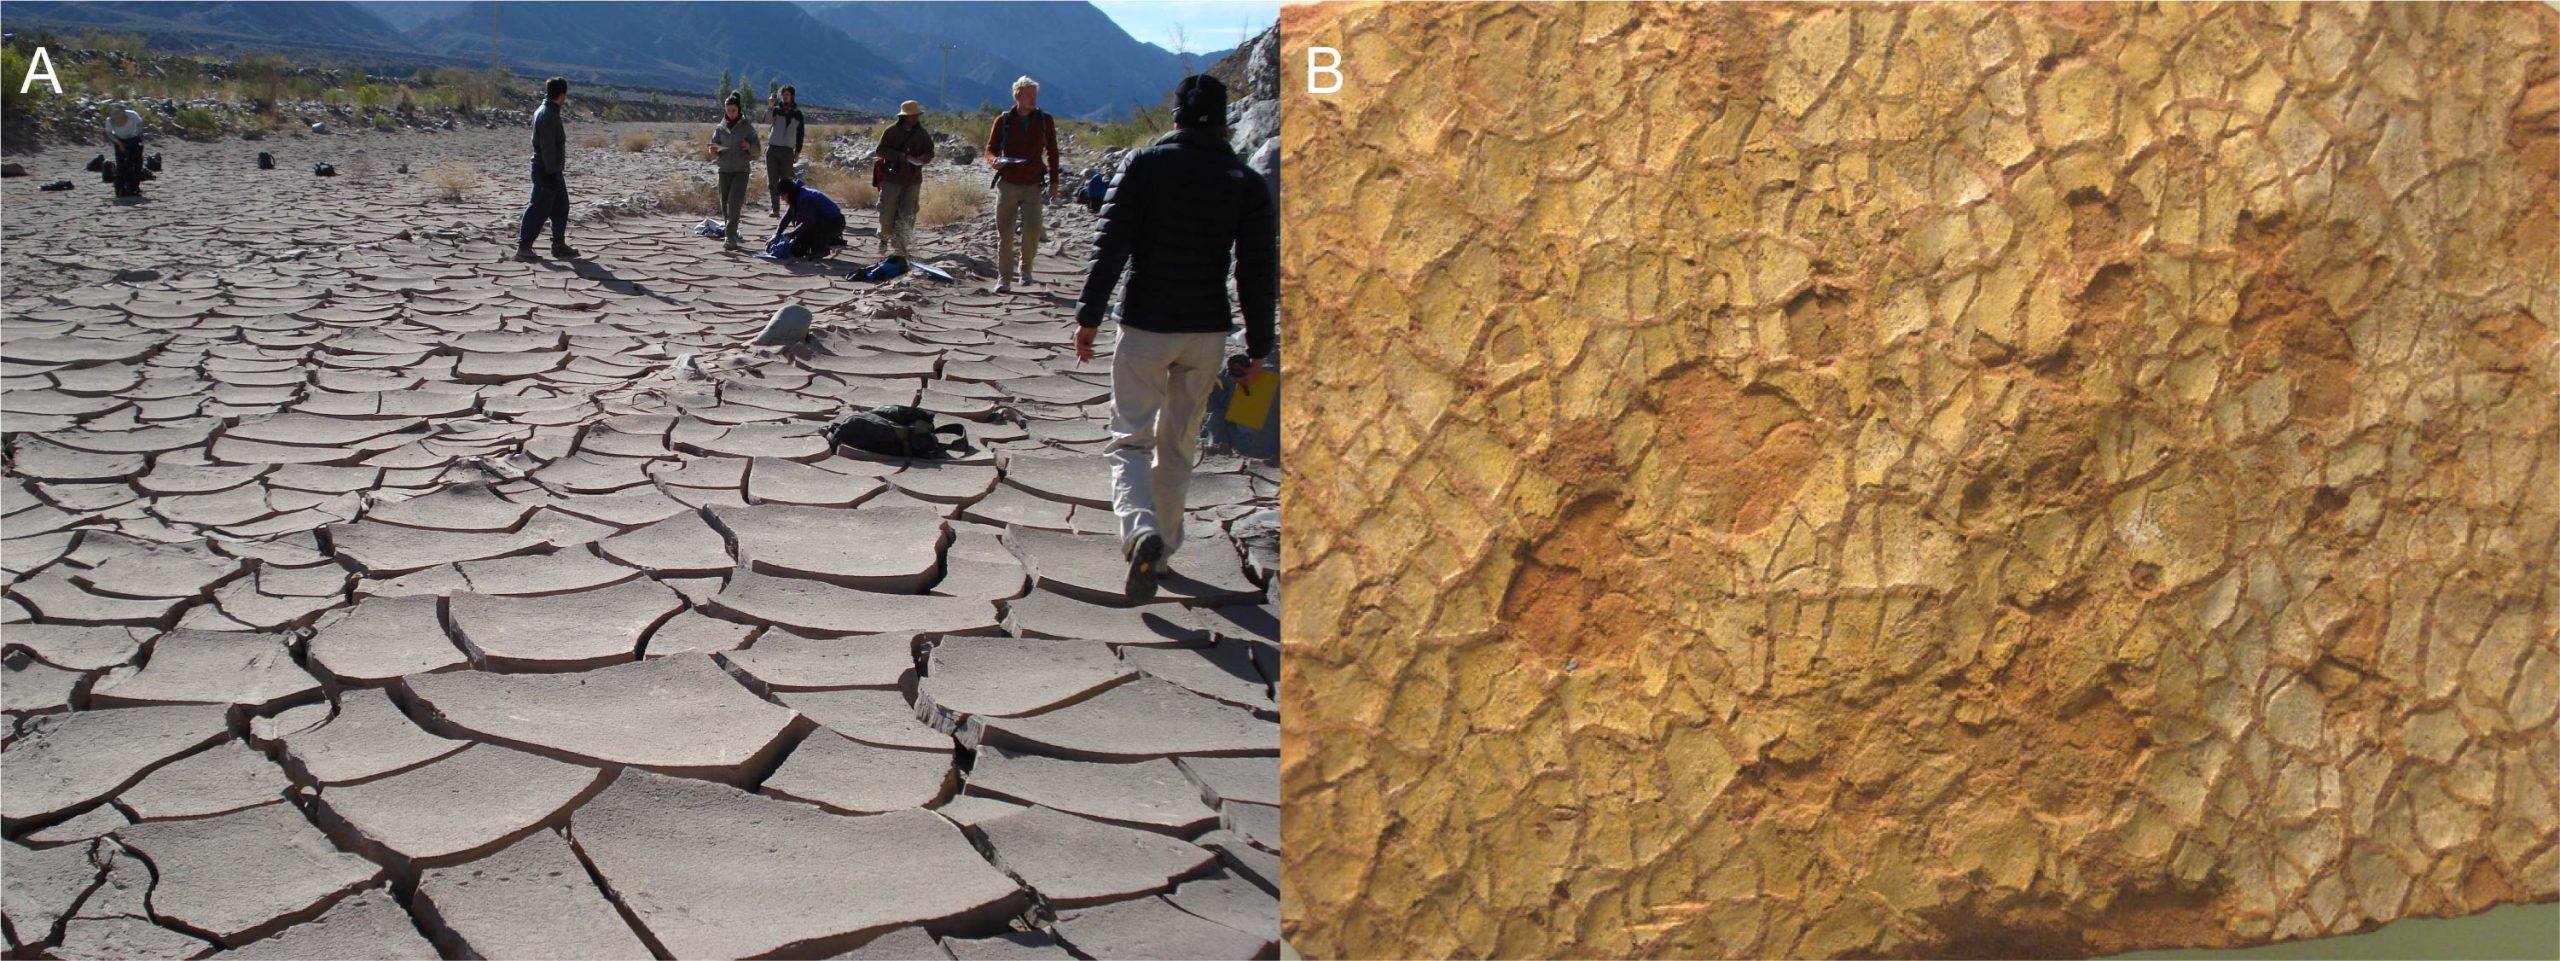 These images show mudcracks. The left image shows modern dried up clay-rich sediment. The right image has ancient cracks.